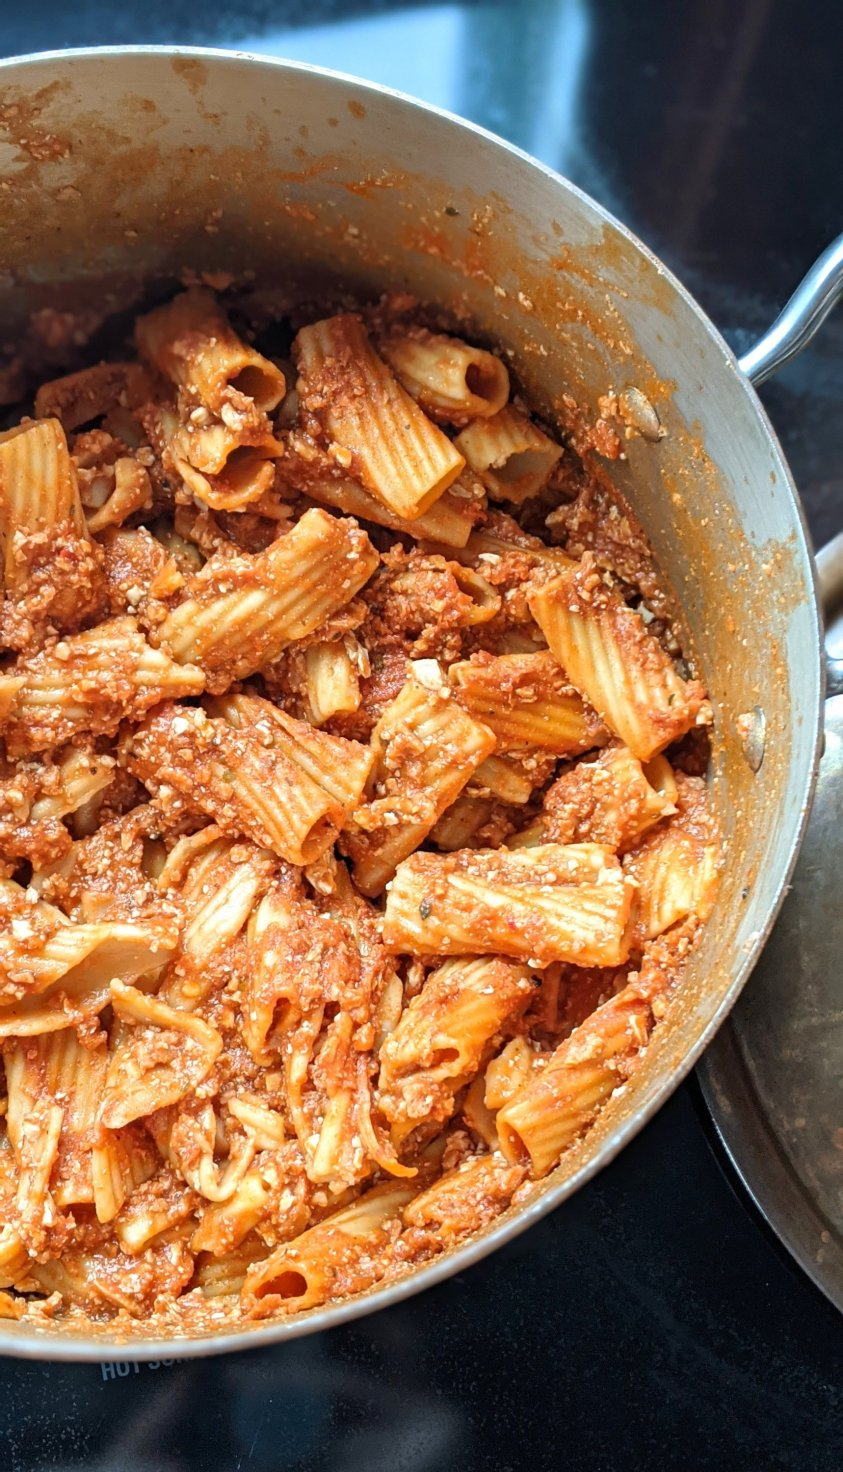 bolognese with tofu recipe vegan gluten free vegetarian meatless spag bol recipes healthy high protein vegan bolognese sauce recipes for pasta